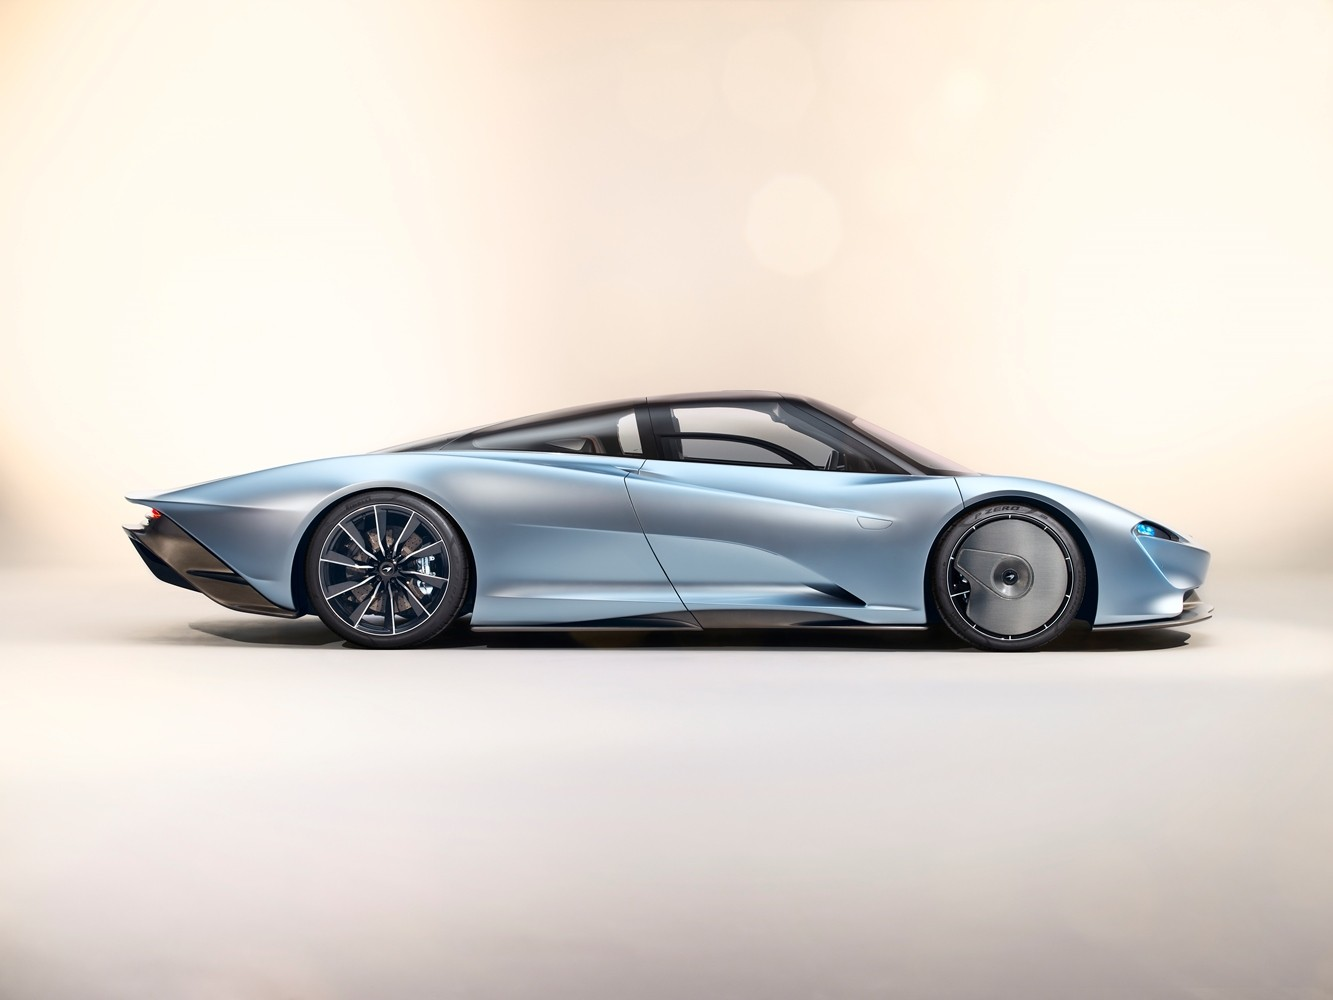 4k Wallpapers Exotic Super Sports Cars Mclaren Speedtail Gets Koenigsegg Regera Touches In Brutal